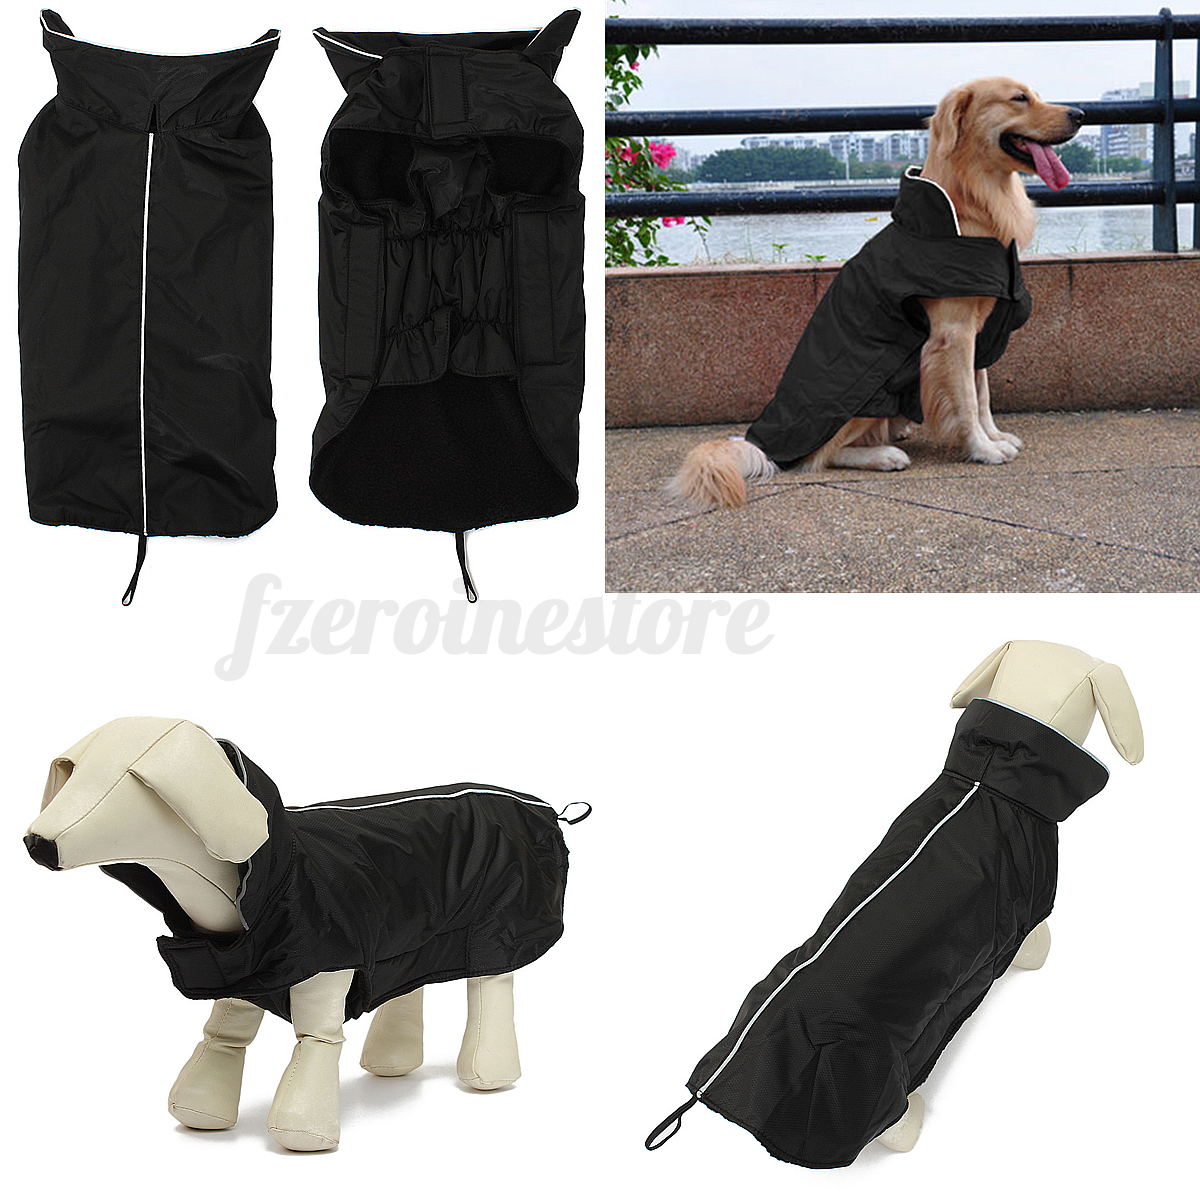 how to make winter rain jacket for dog